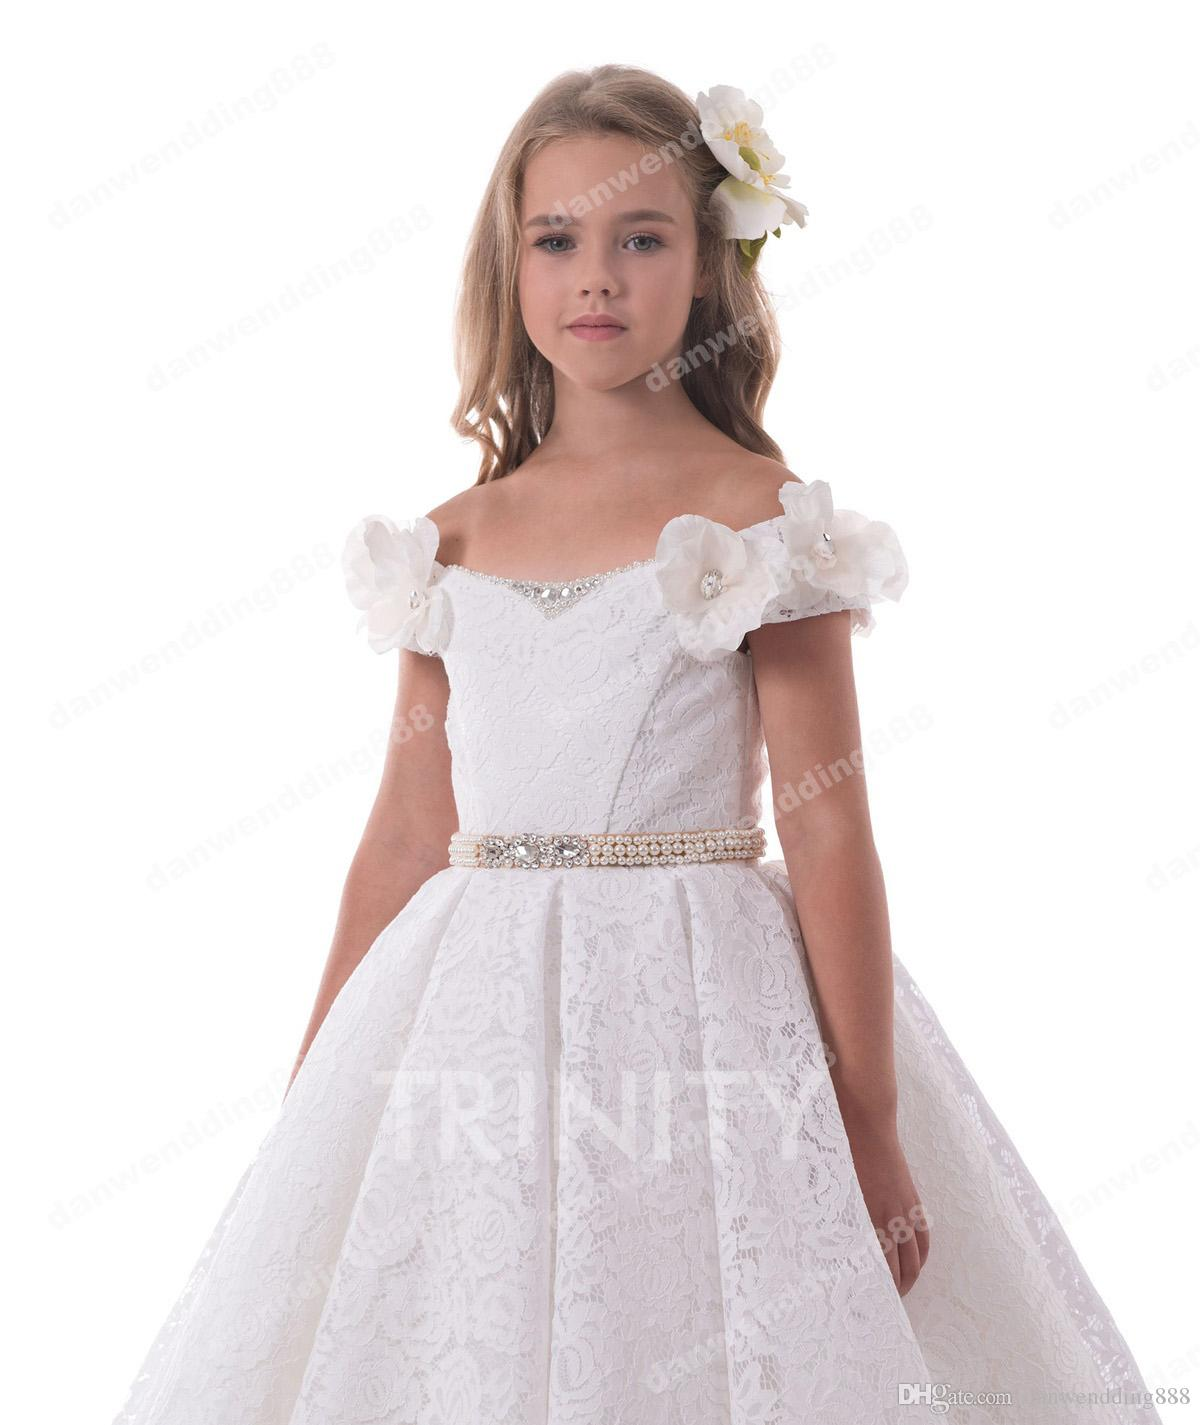 Beauty White Lace Scoop Sash Flower Girl Dresses Princess Dresses Girl's Pageant Dresses Custom Made Size 2-6 8 10 12 14 KF327240